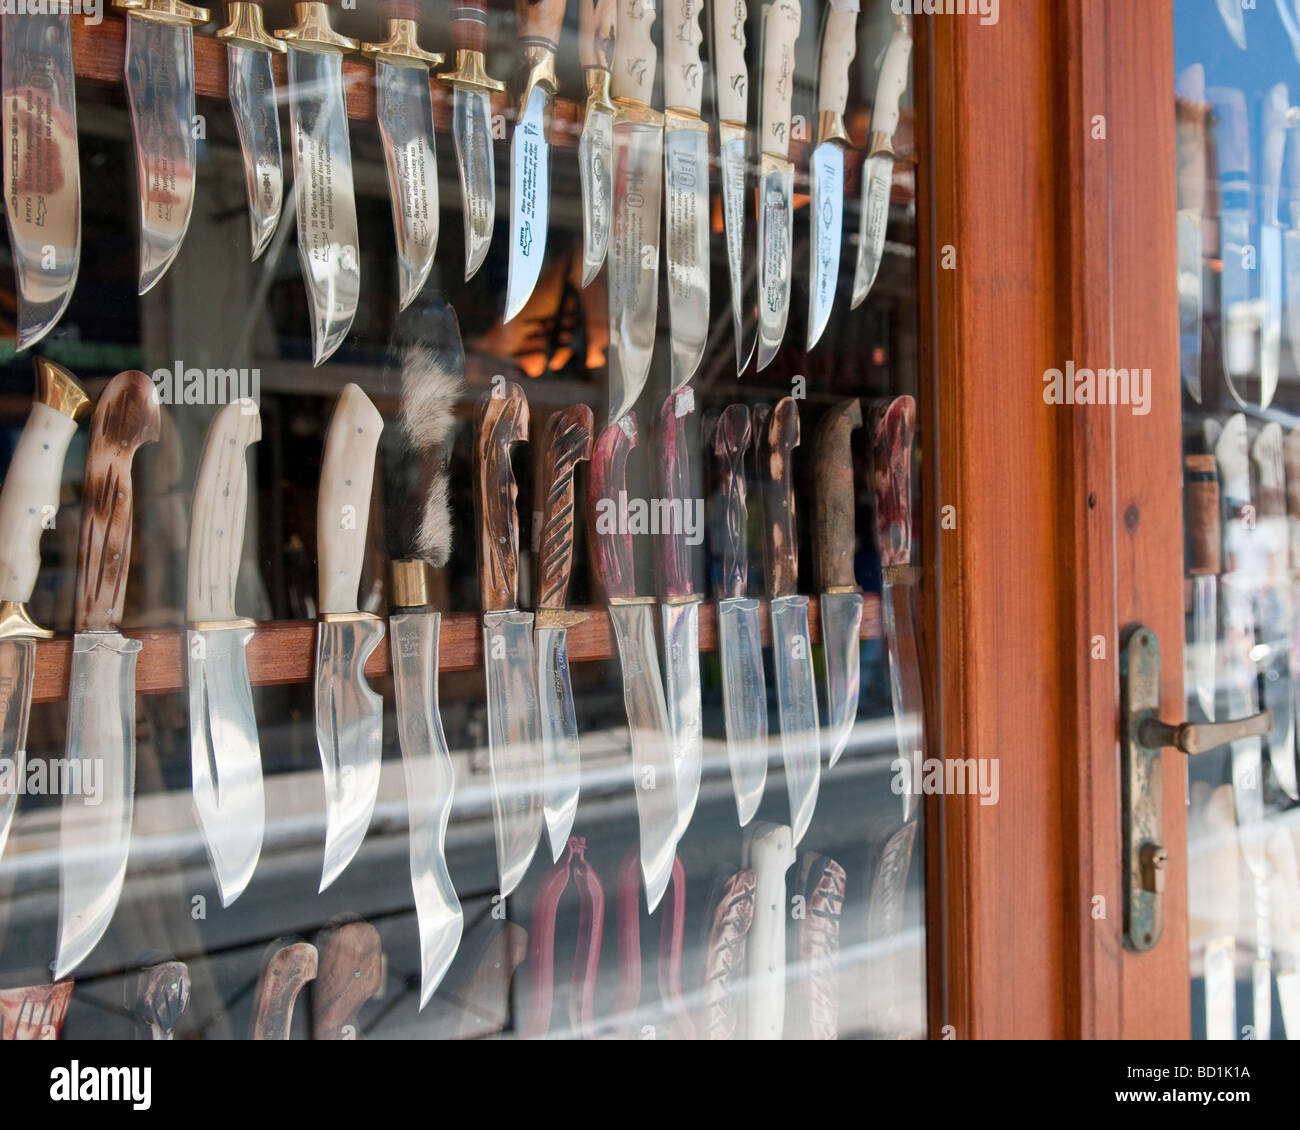 Shop selling knives in the Old Town in Chania, Crete, Greece. - Stock Image